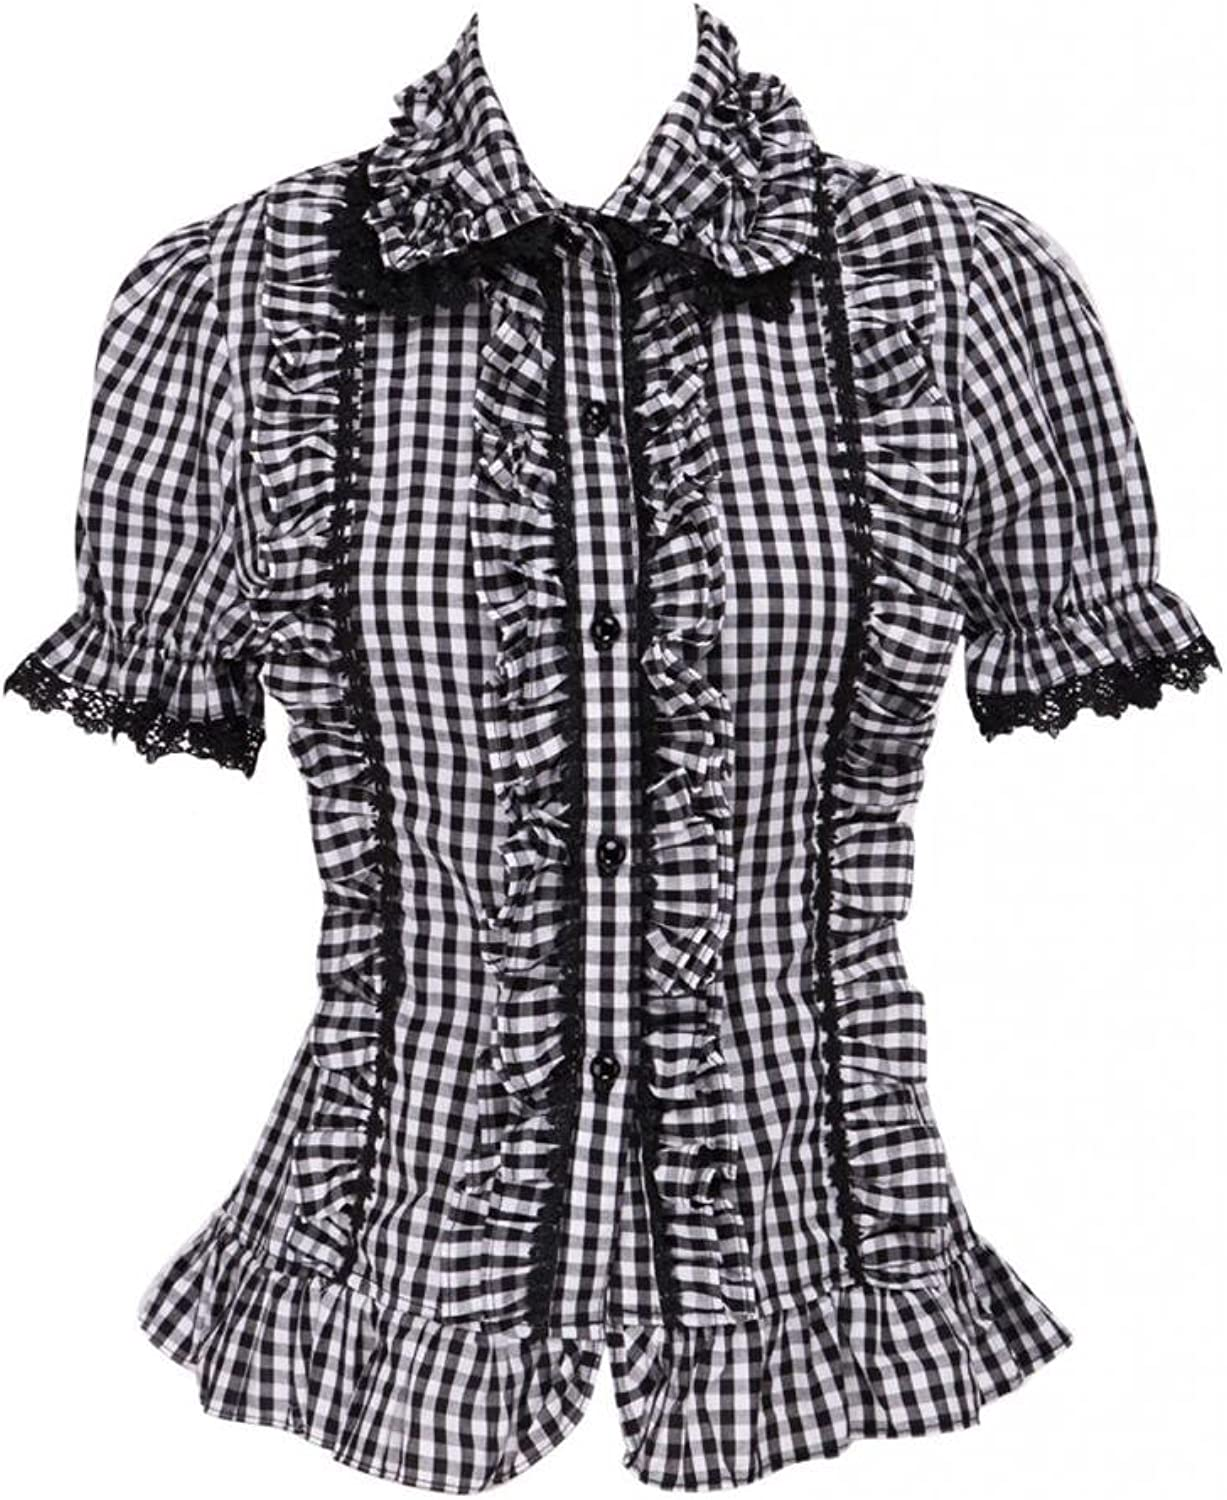 Hugme Black and White Squares Lolita Blouse Short Sleeves Bow Ruffles